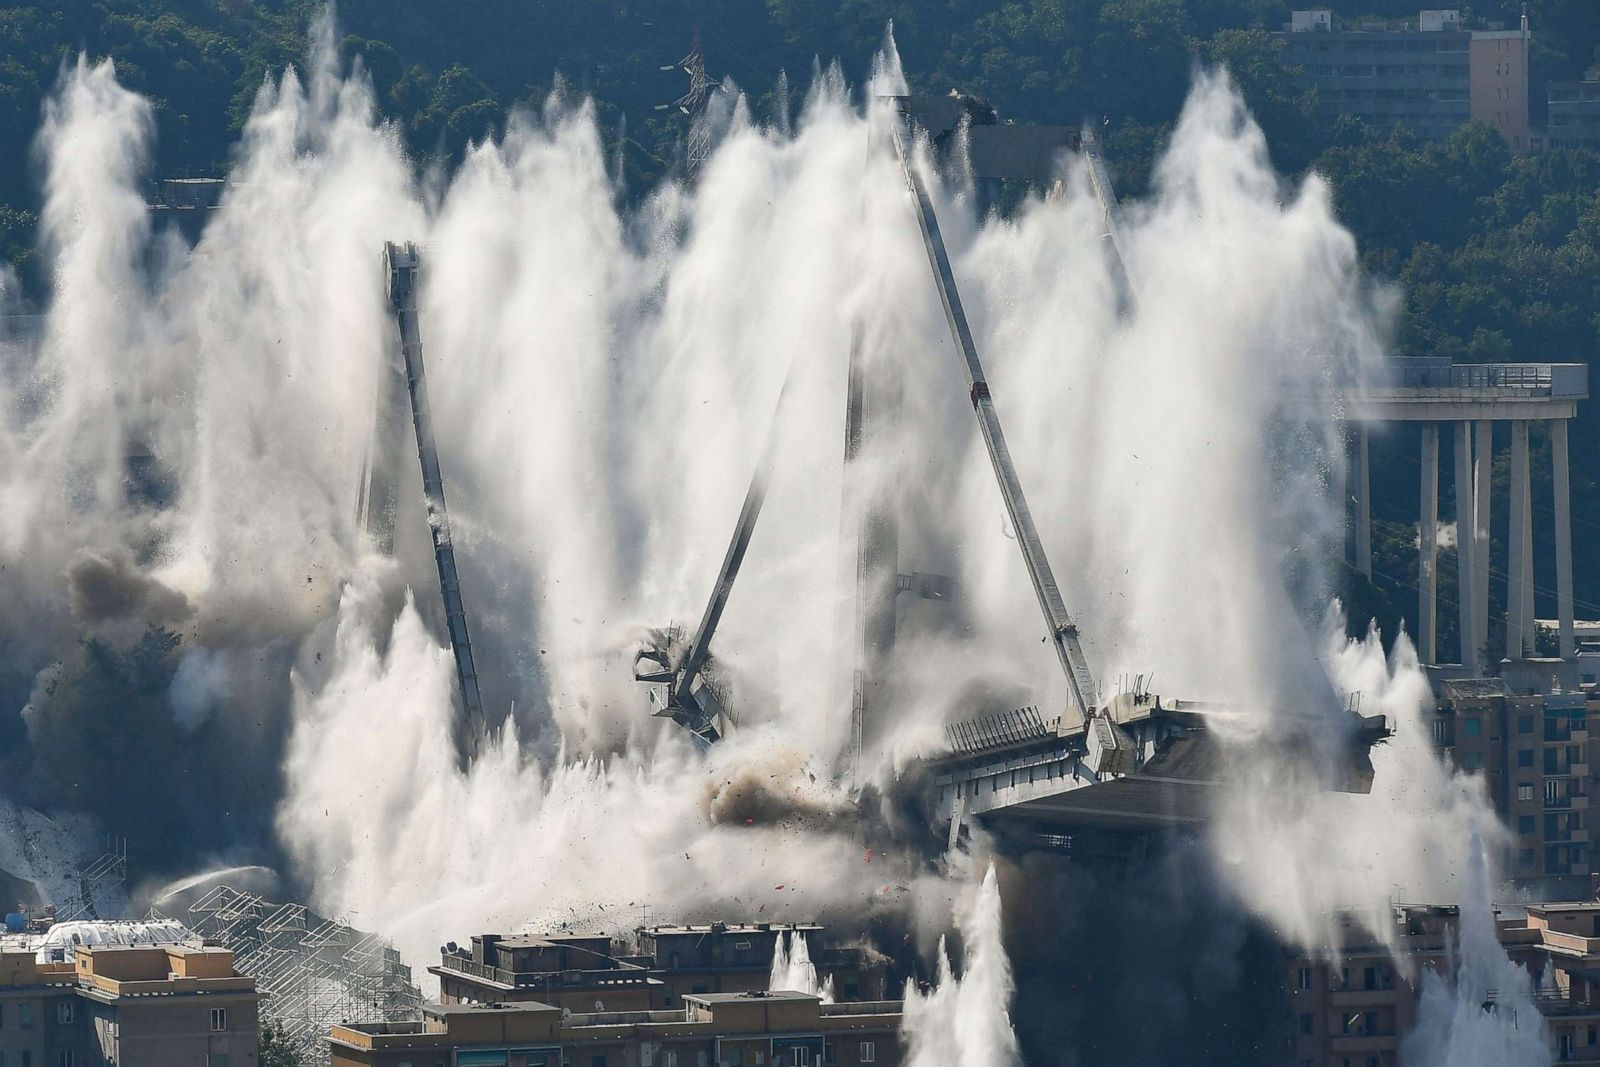 IMG GENOA BRIDGE DEMOLISHED